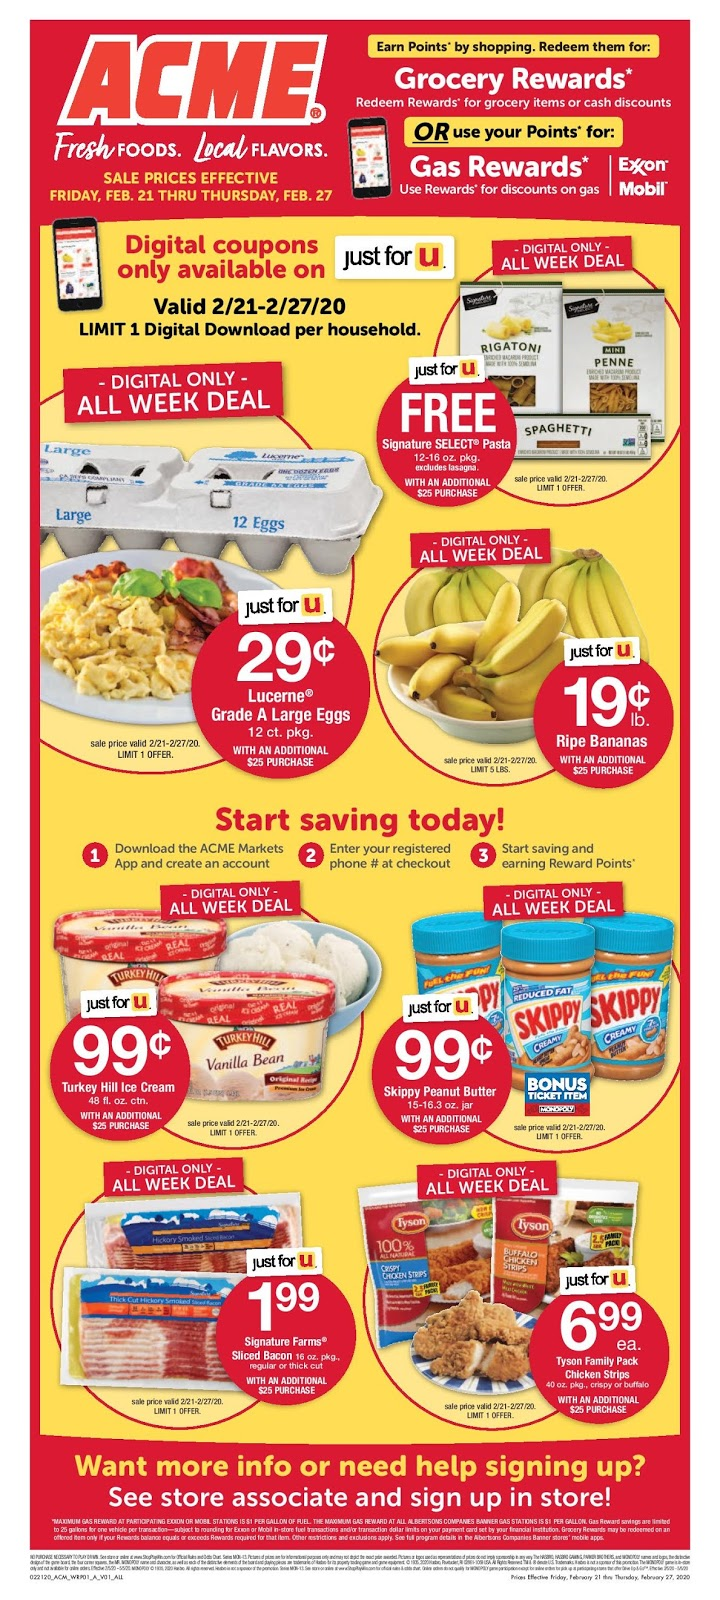 ⭐ Acme Ad 2/28/20 ⭐ Acme Weekly Ad February 28 2020